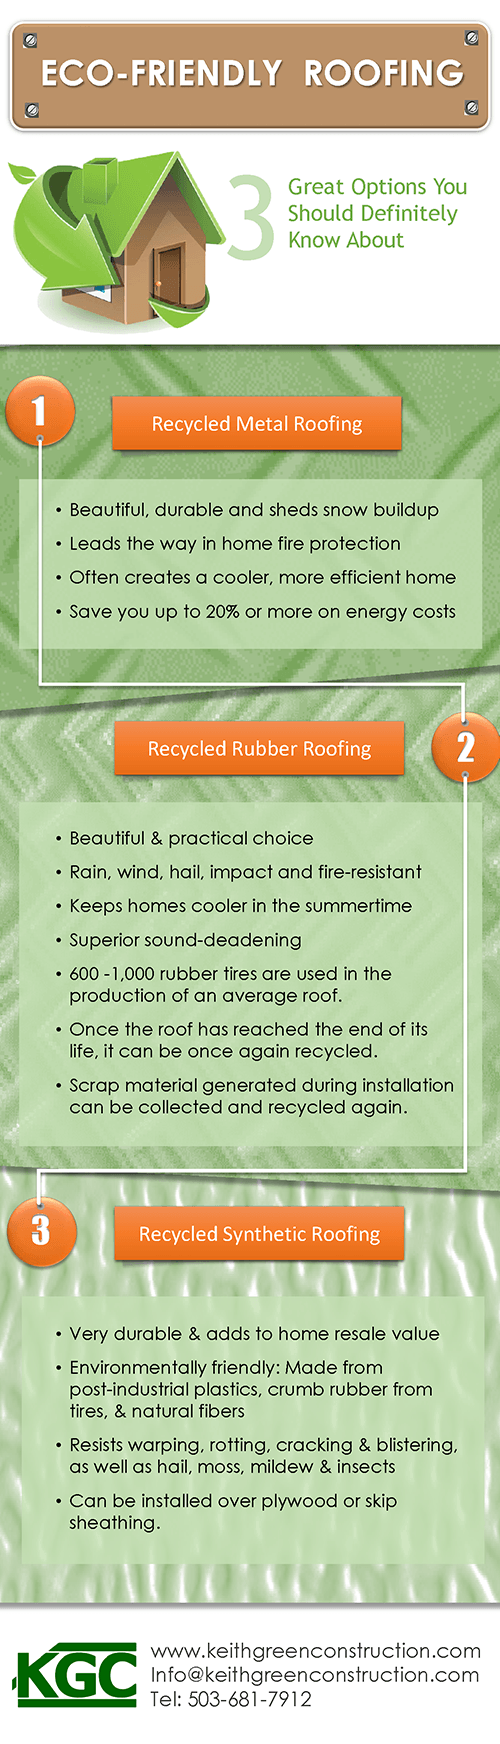 Eco-Friendly-Roofing-Final